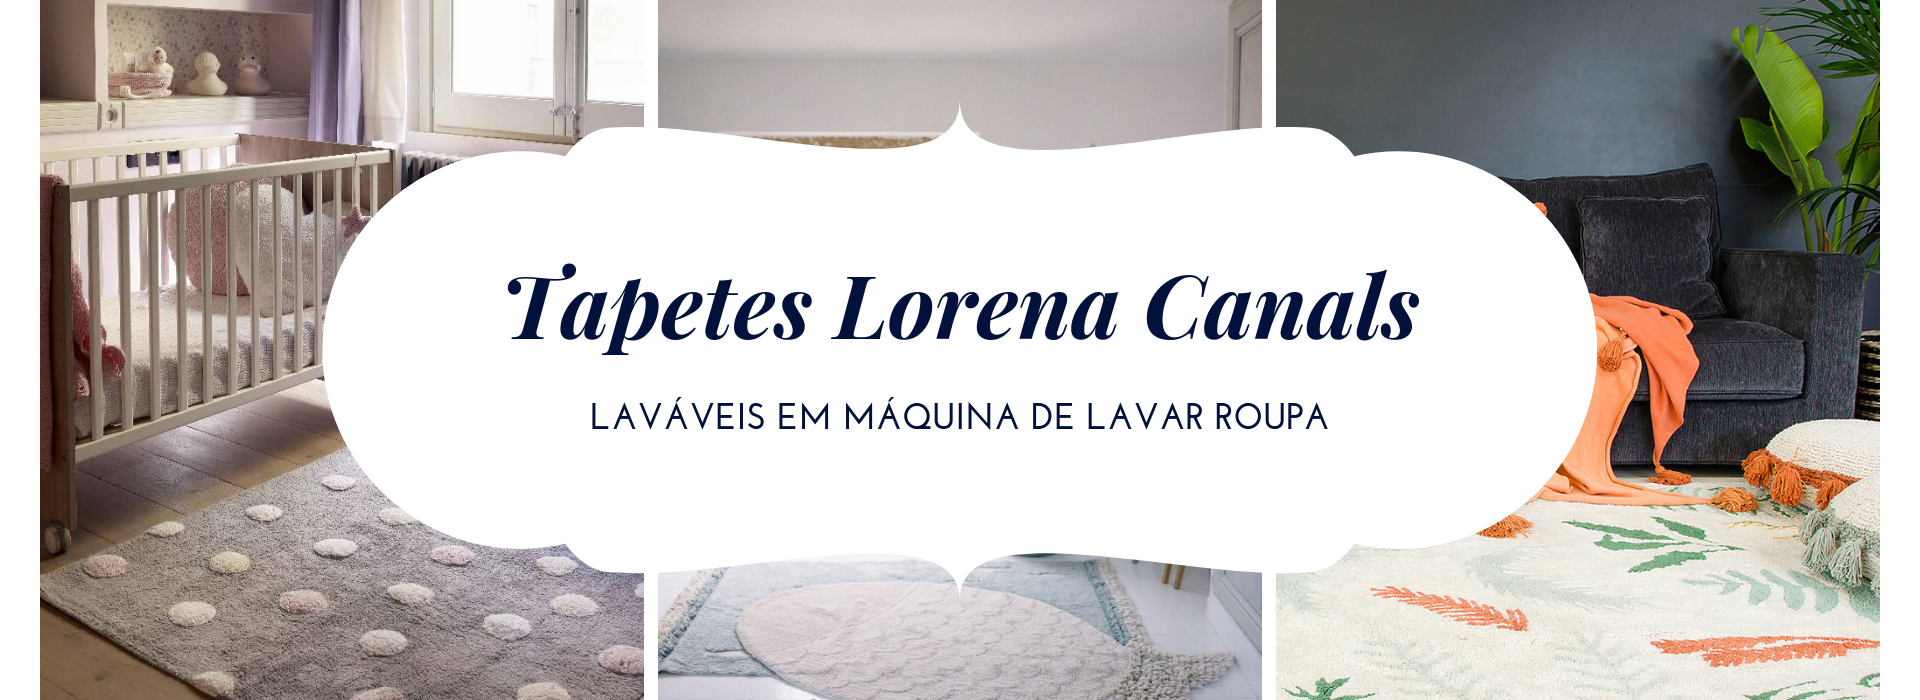 Tapetes Lorena Canals